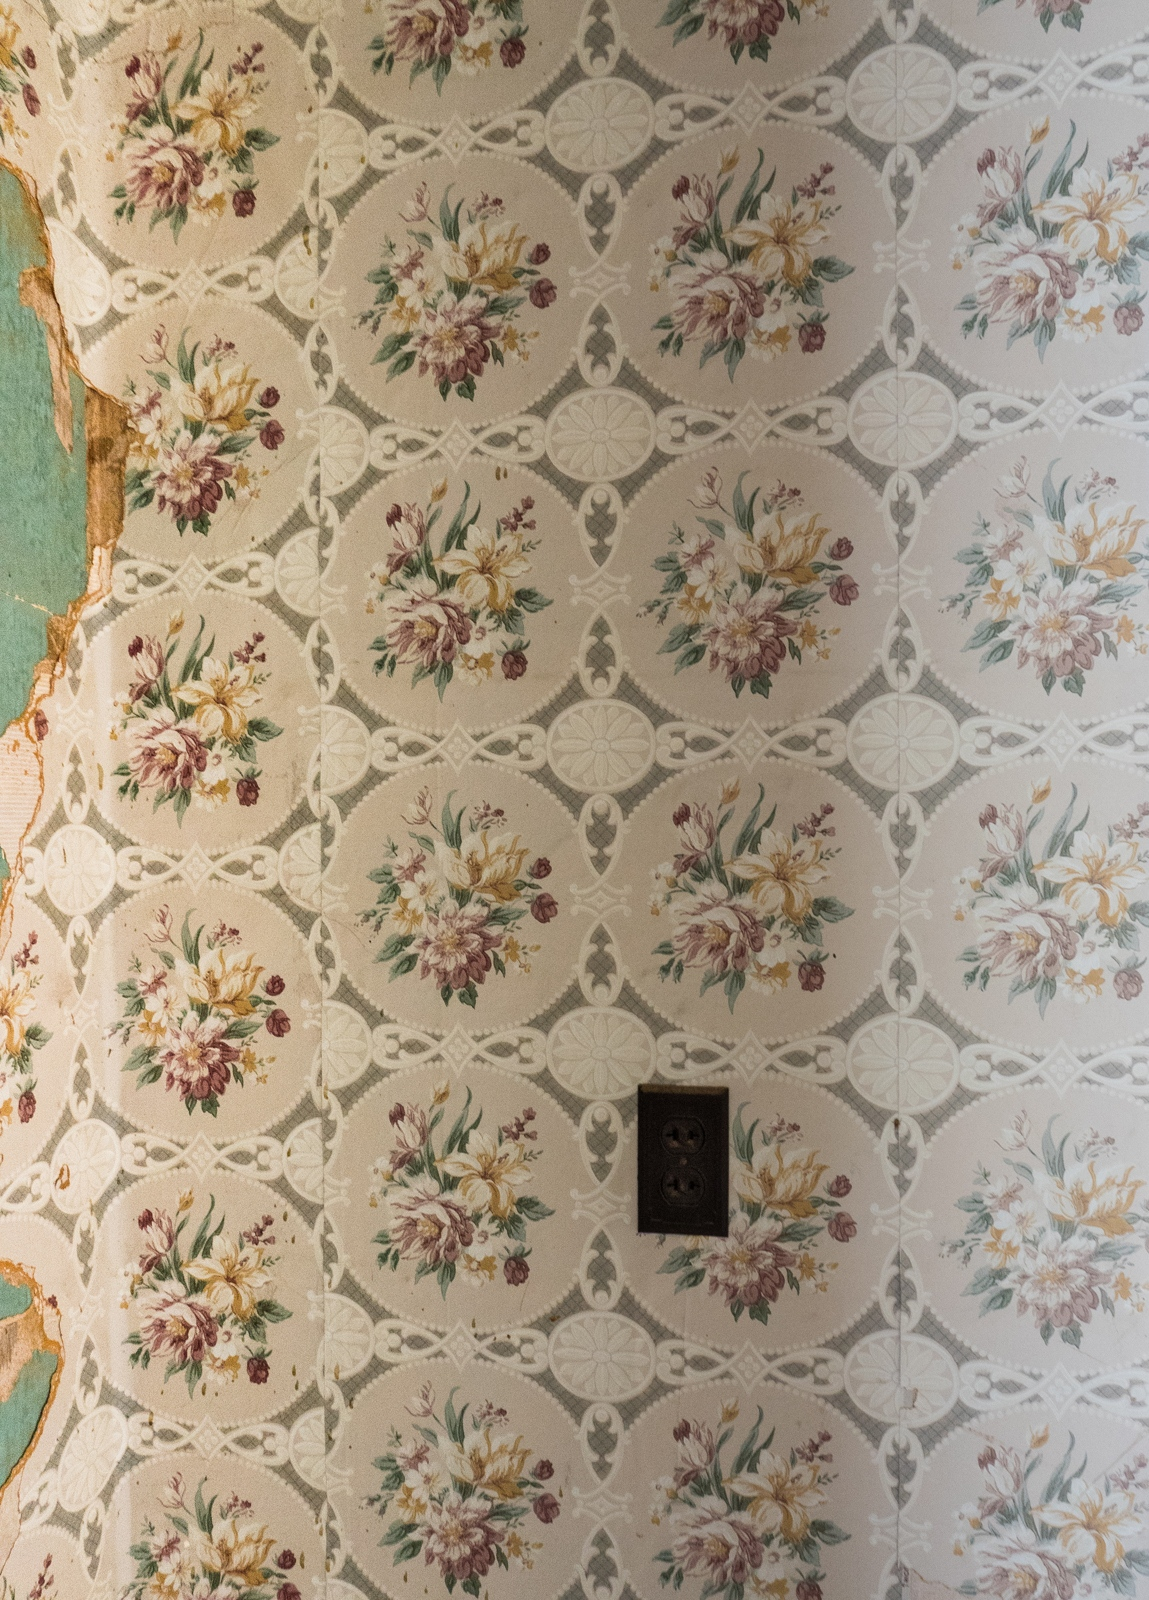 Torn wallpaper with electrical outlet.